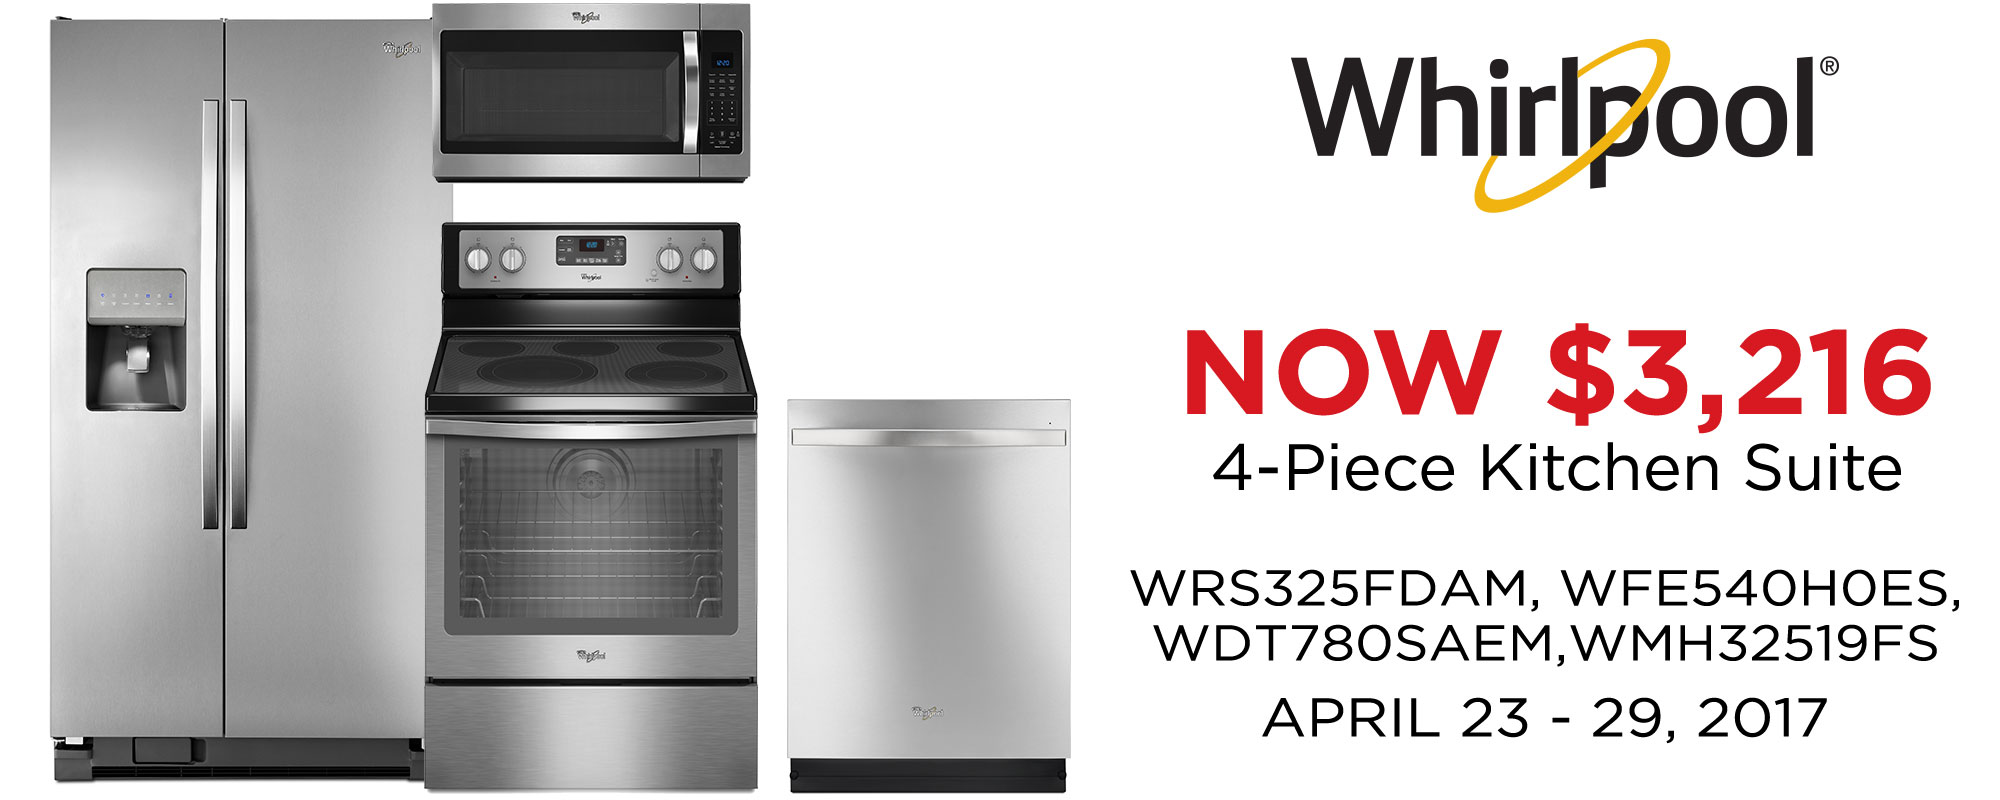 Whirlpool - | Heins Appliance and Refrigeration